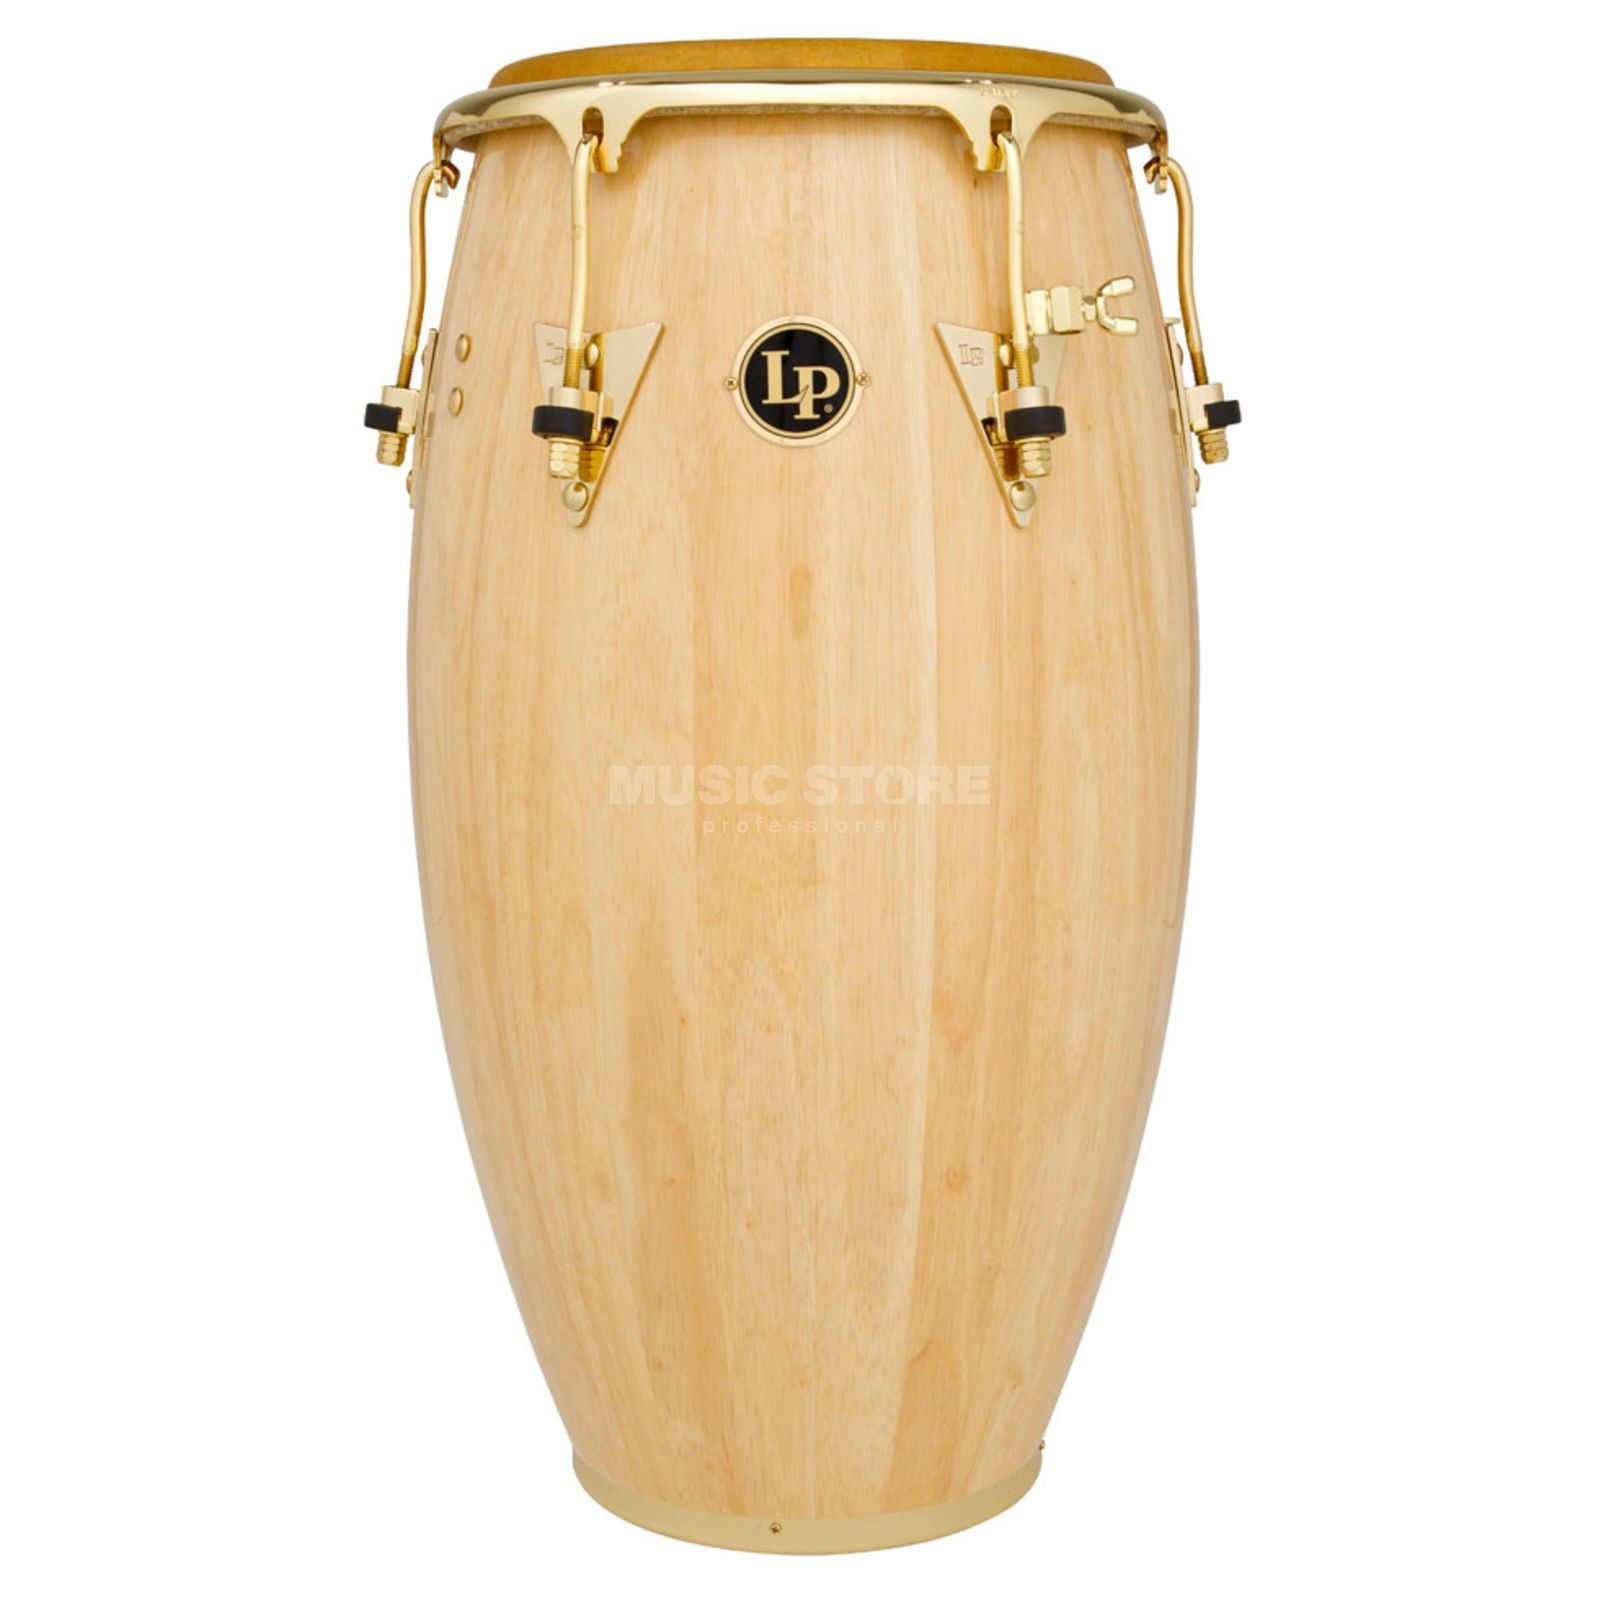 "Latin Percussion Salsa Conga LP259X-AW, 11-3/4"" Conga, Natural Product Image"